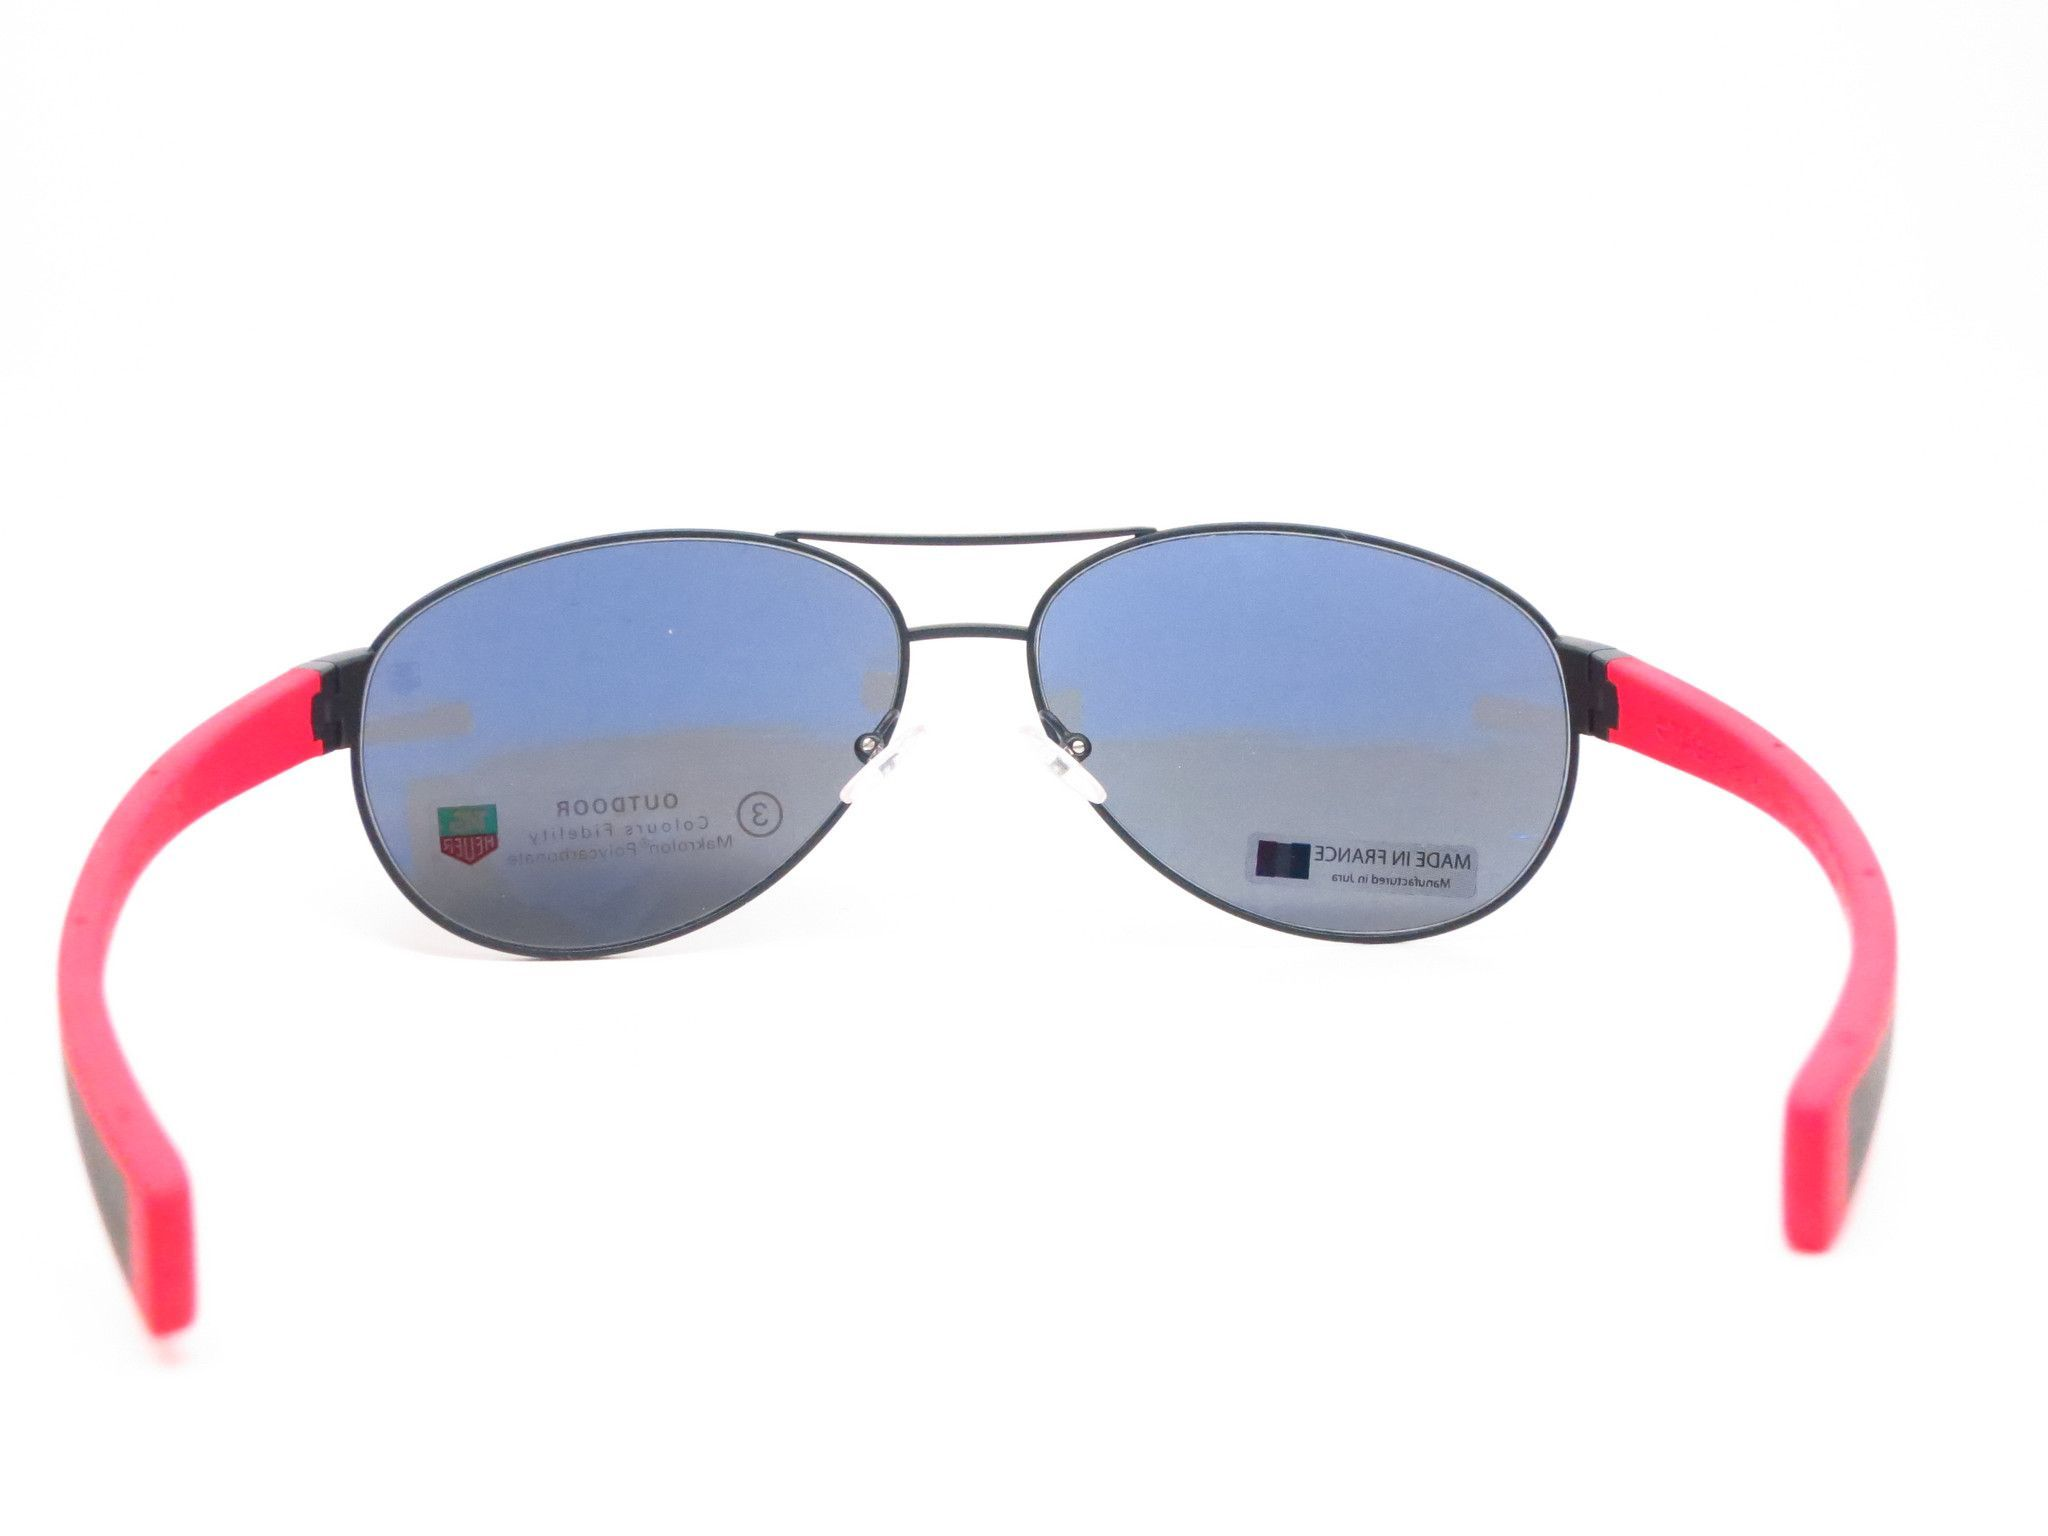 3a07dae945320 Features of the Tag Heuer TH 0256 Sunglasses - Adjustable silicone nose  pads - Rubber temples